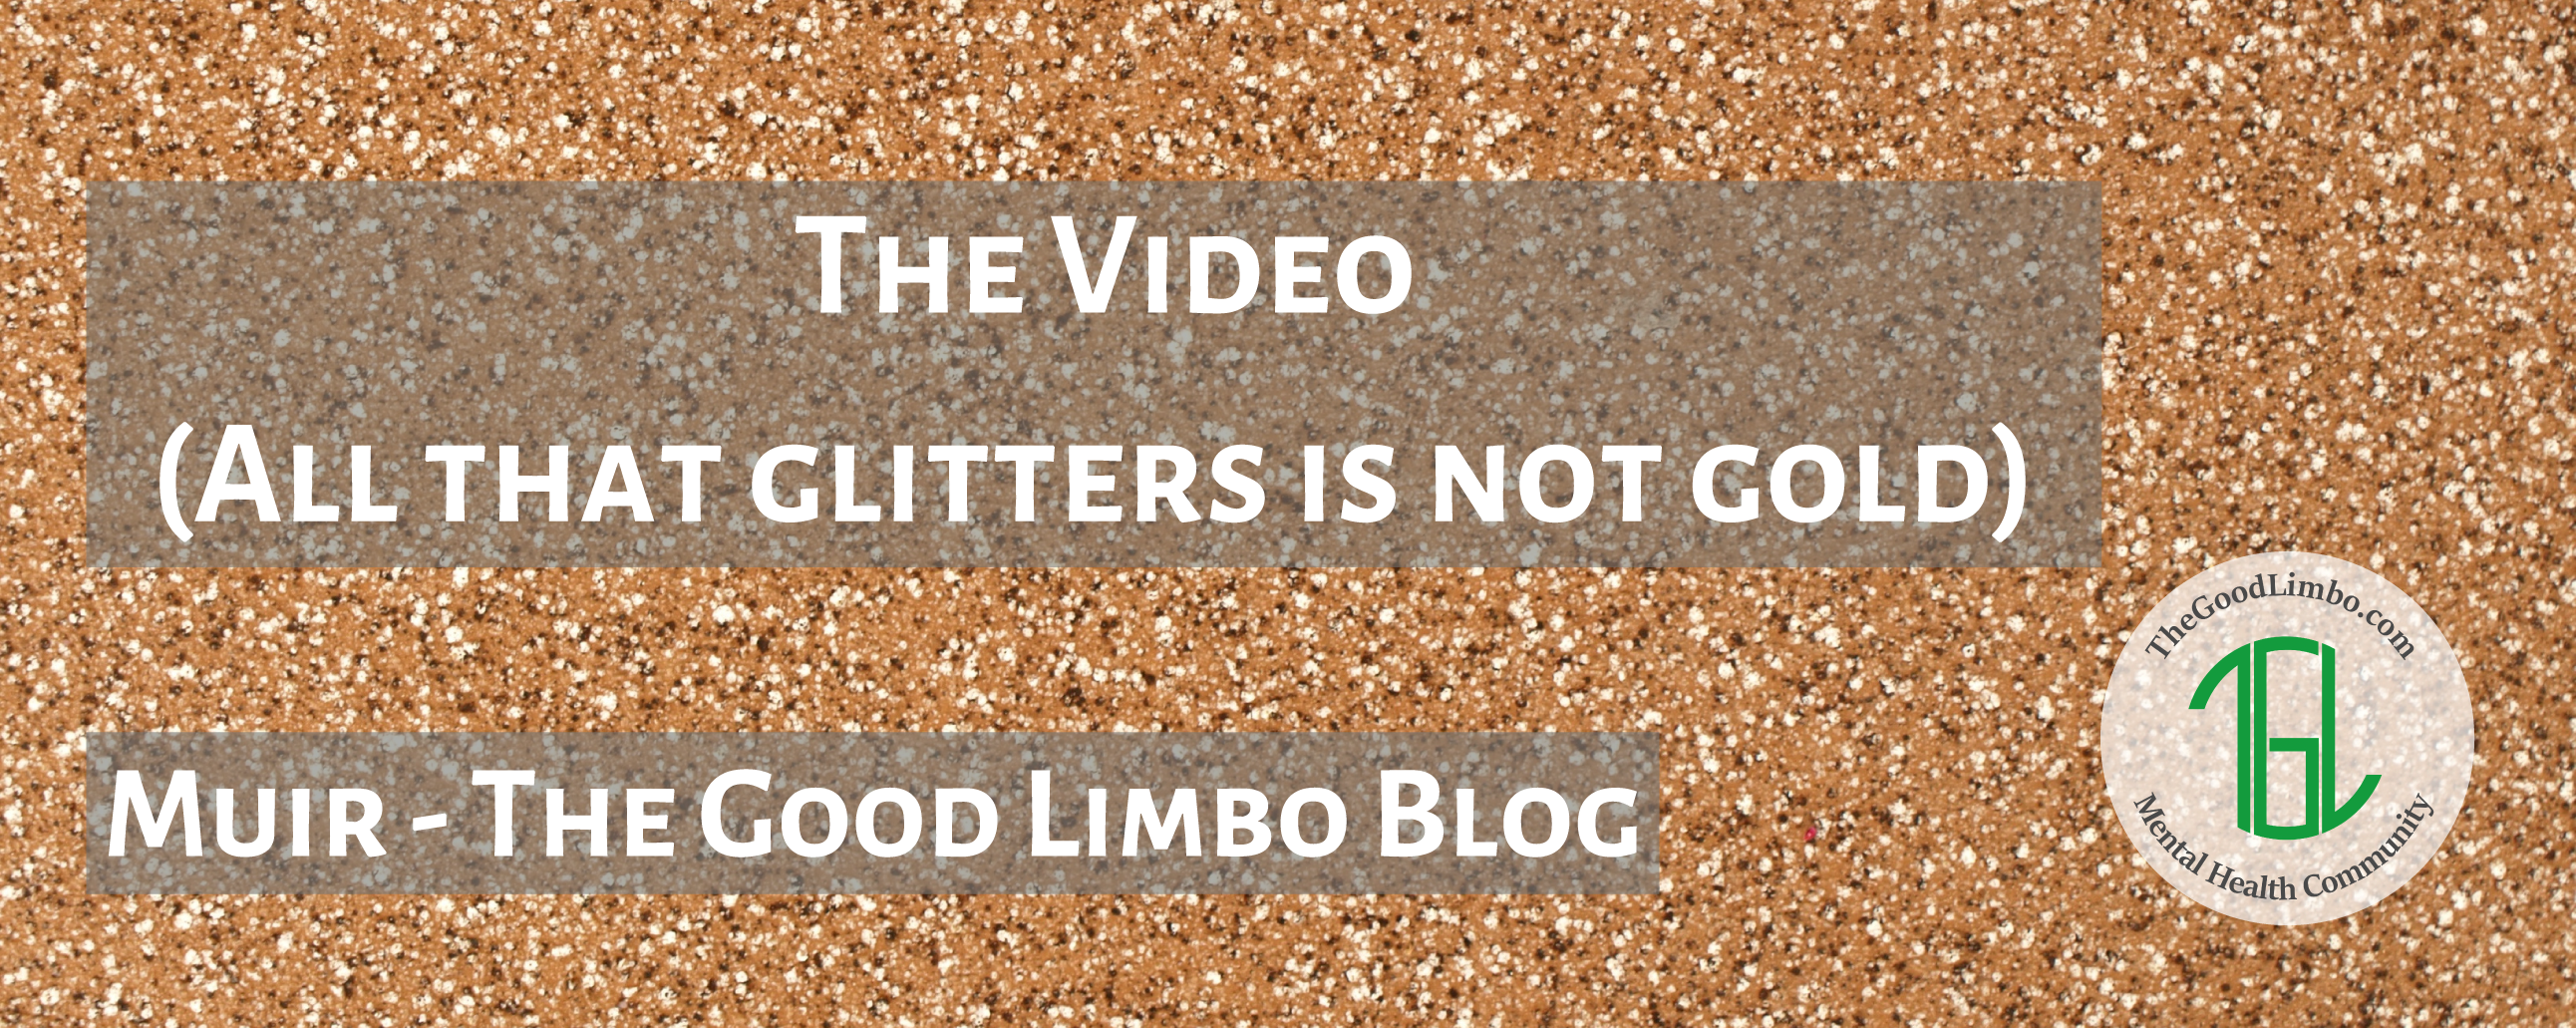 The Video Blog Glitter image